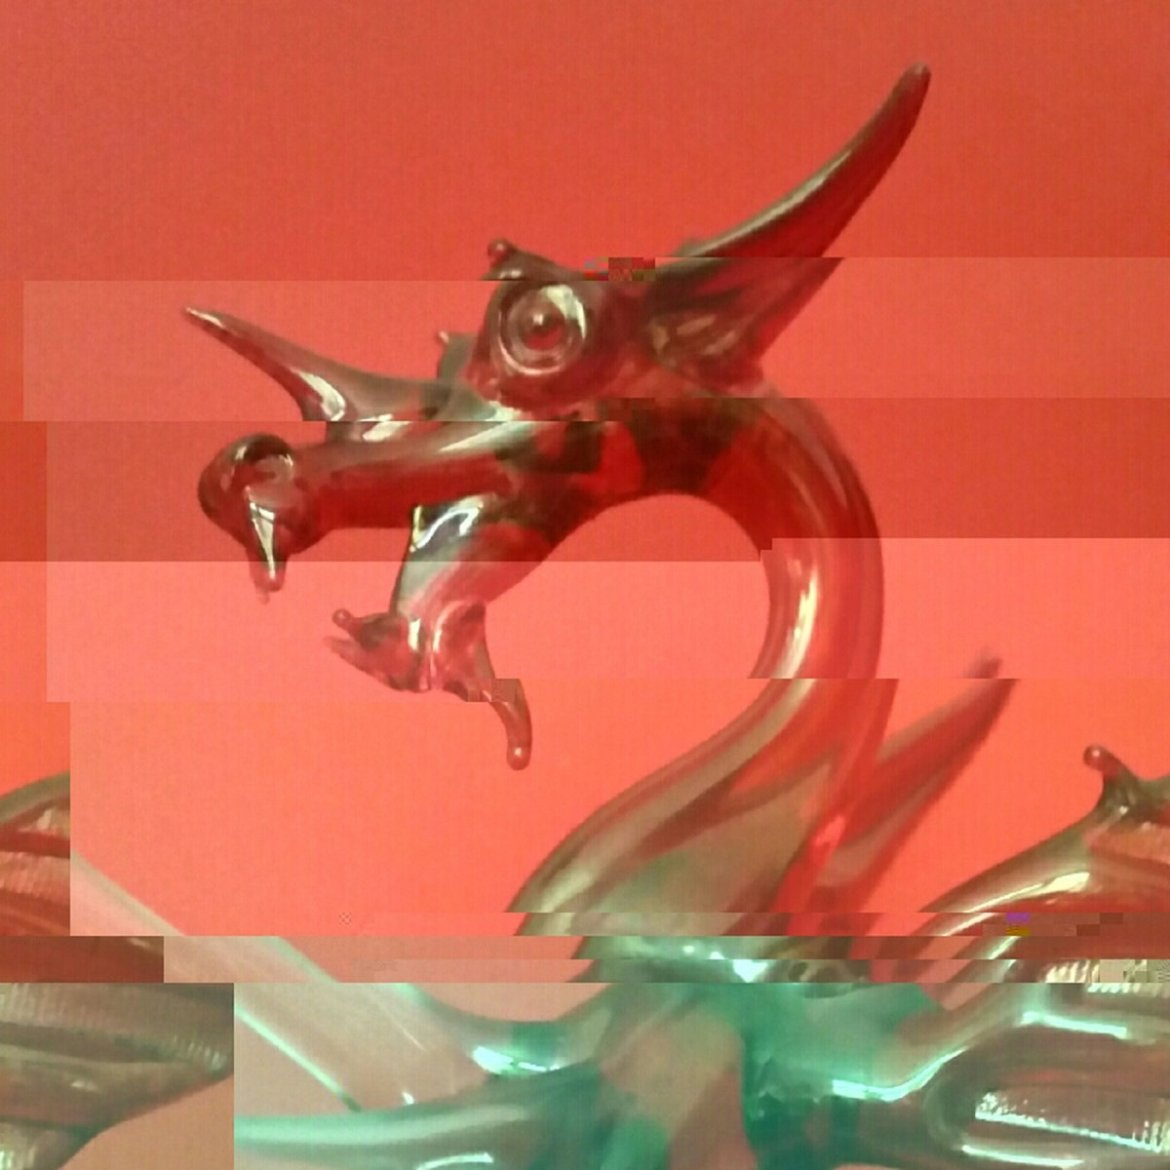 Track by Track: Xqui – Dragon